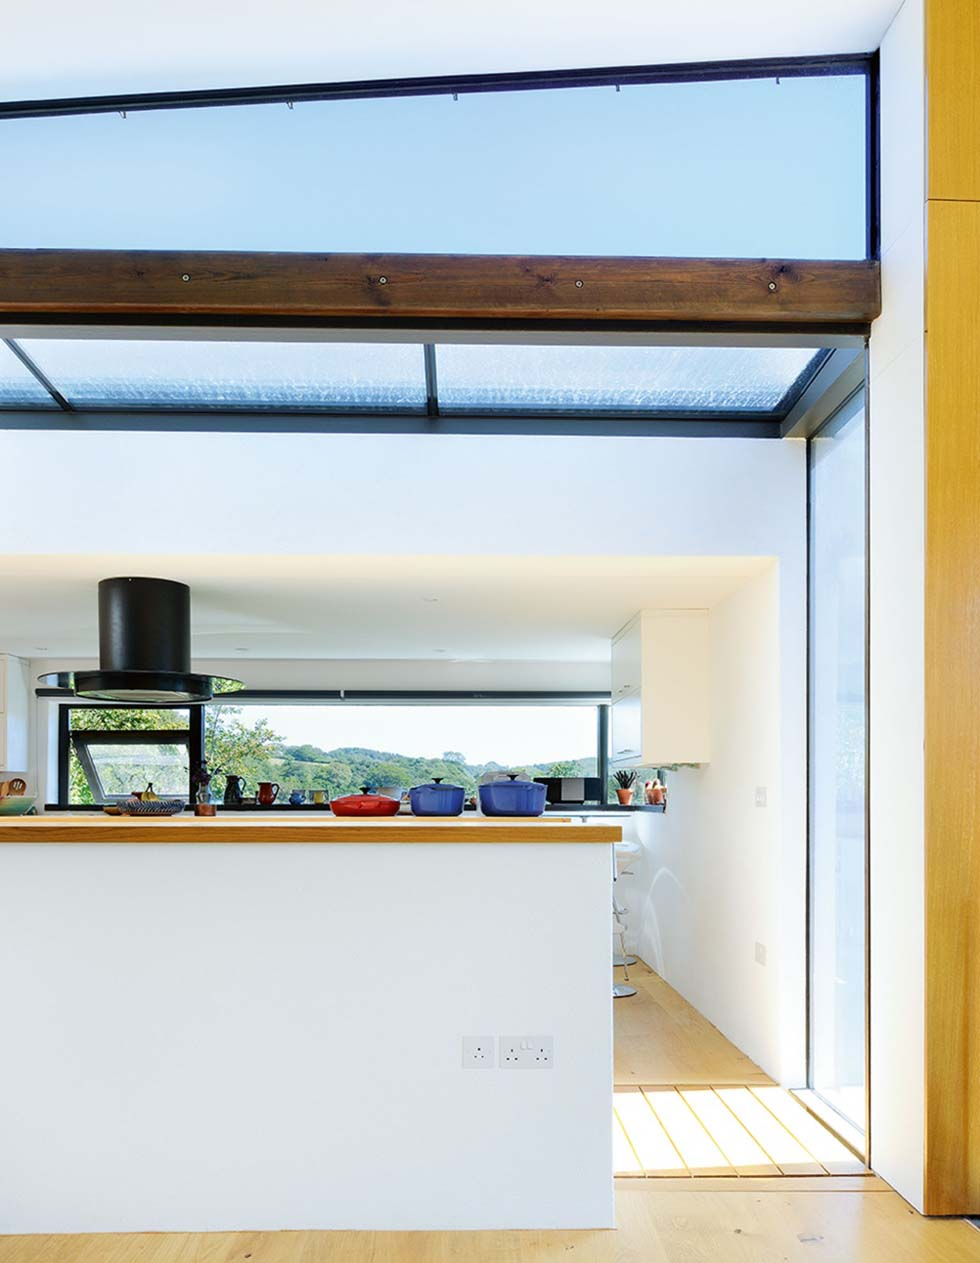 Glass panes bring natural light into the kitchen